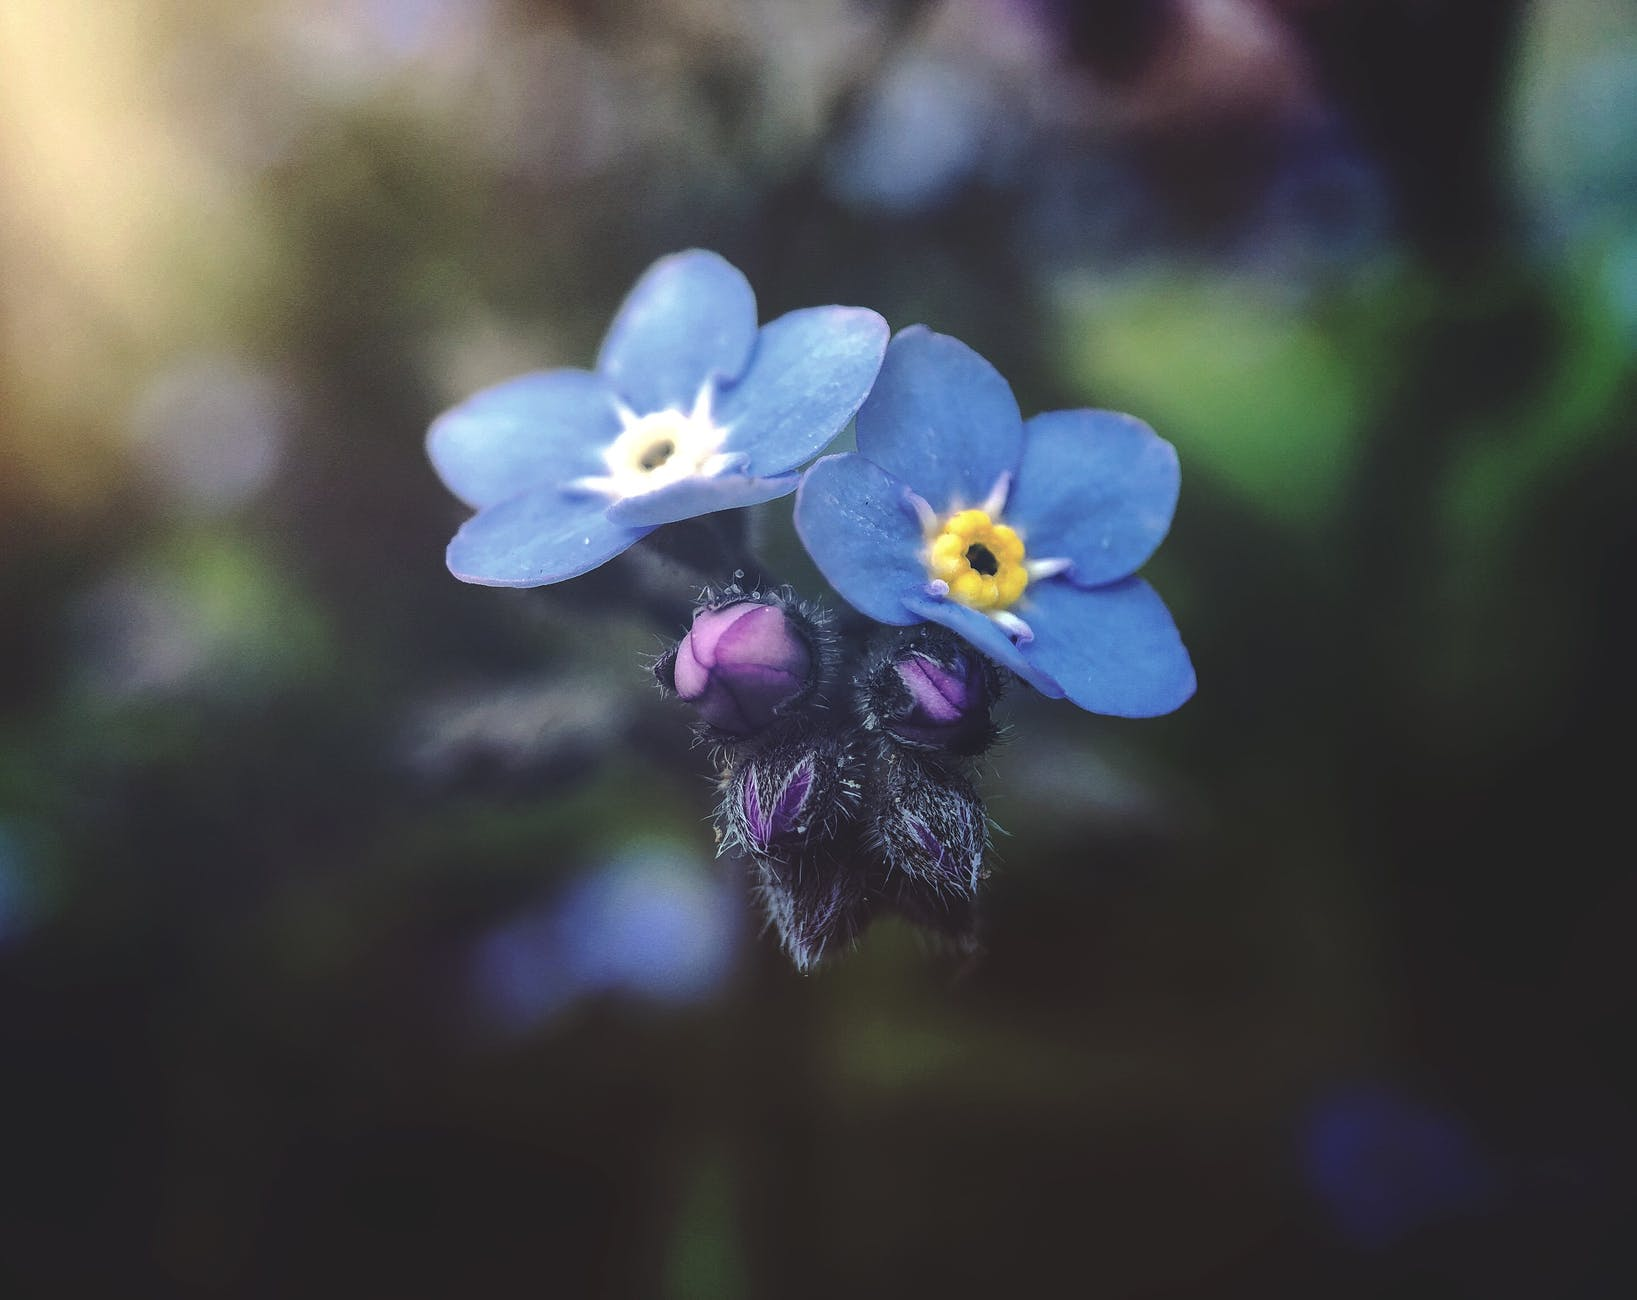 Two forget-me-not flowers